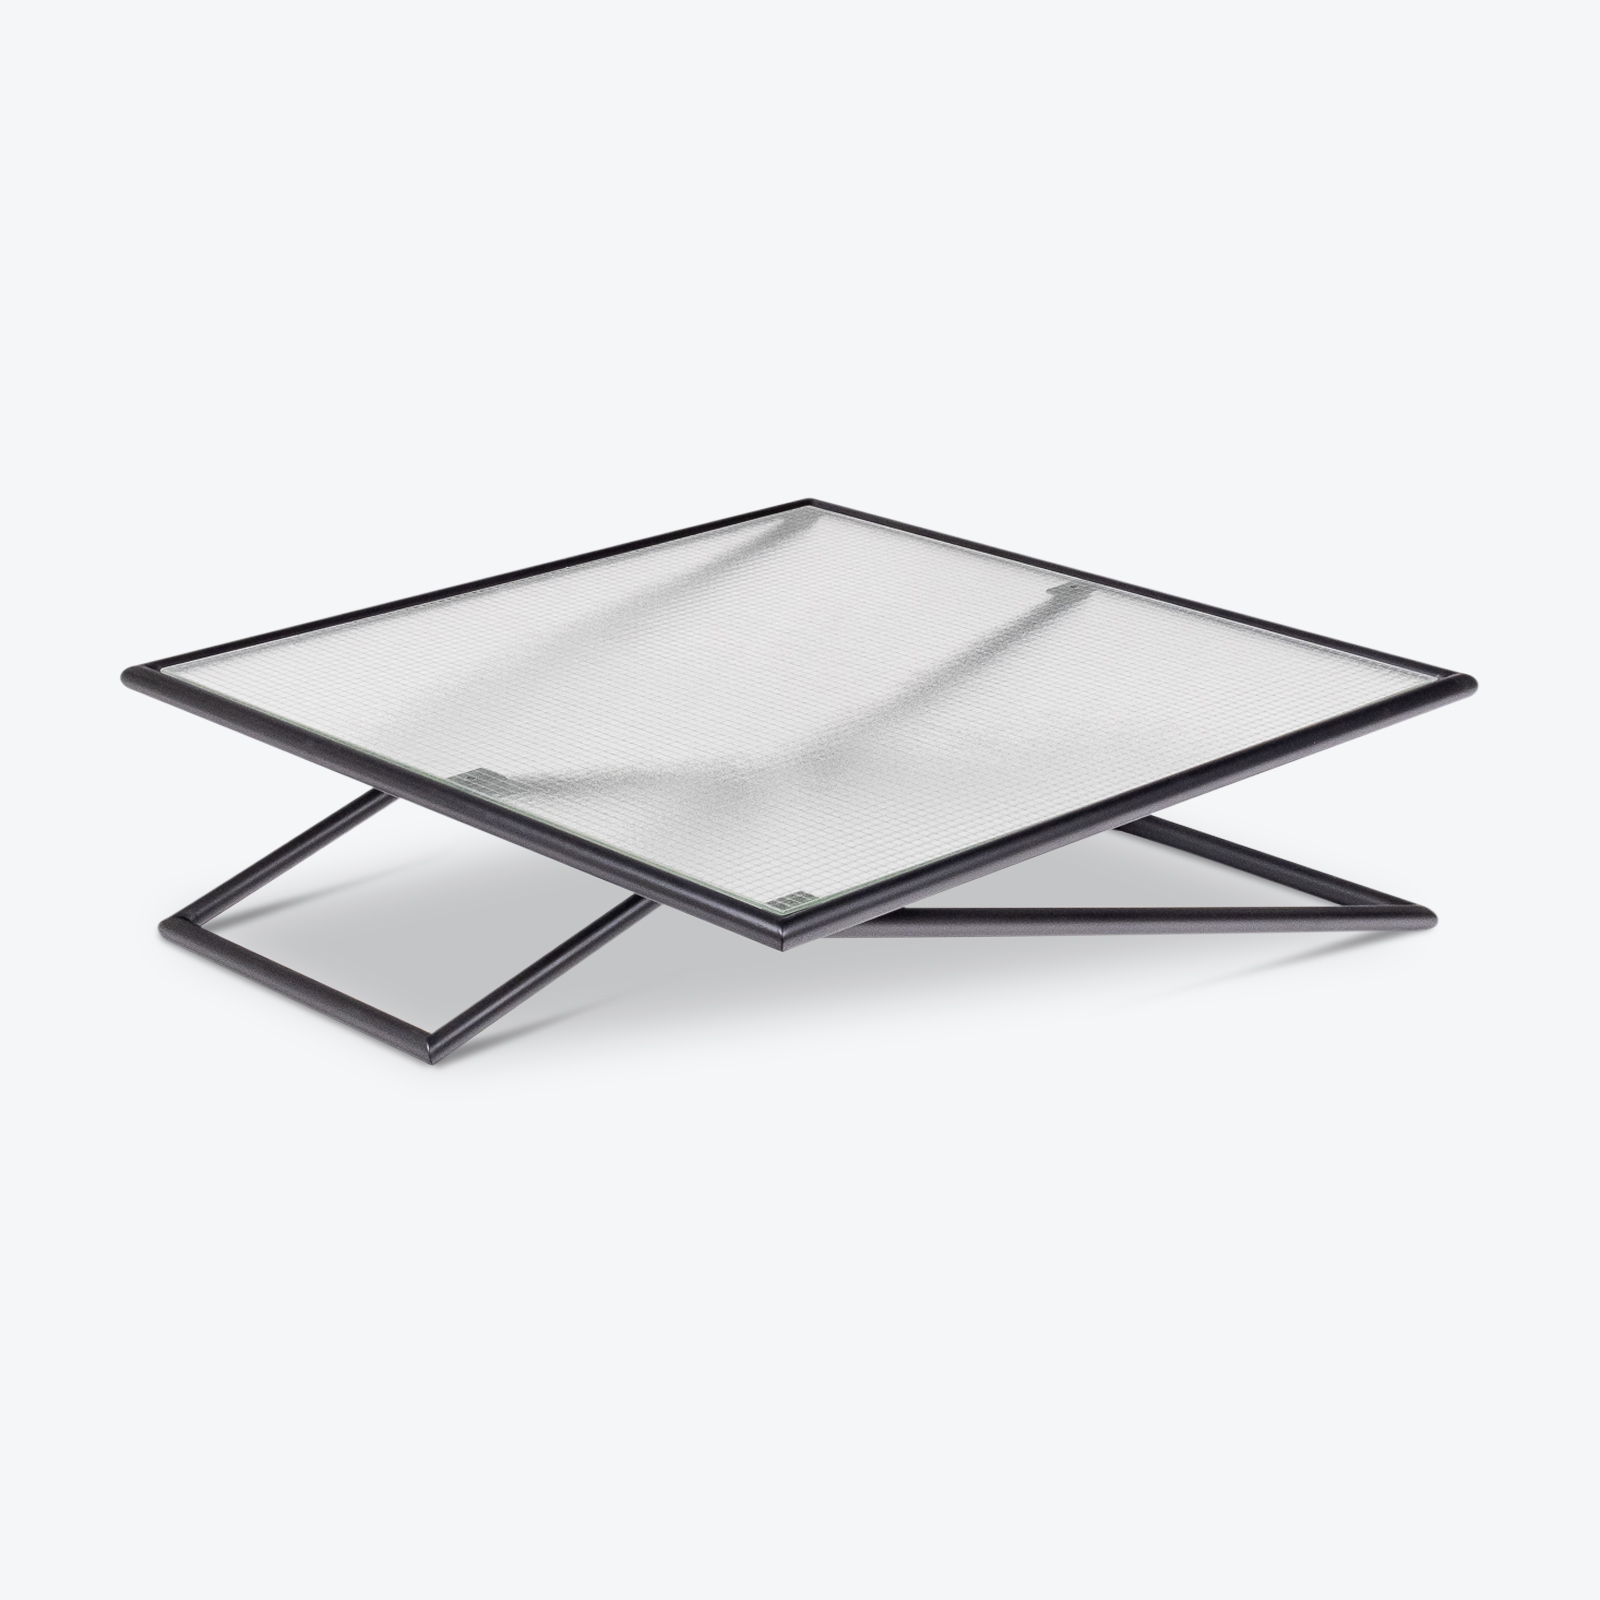 Coffee Table By Harvink, 1960s, The Netherlands Hero